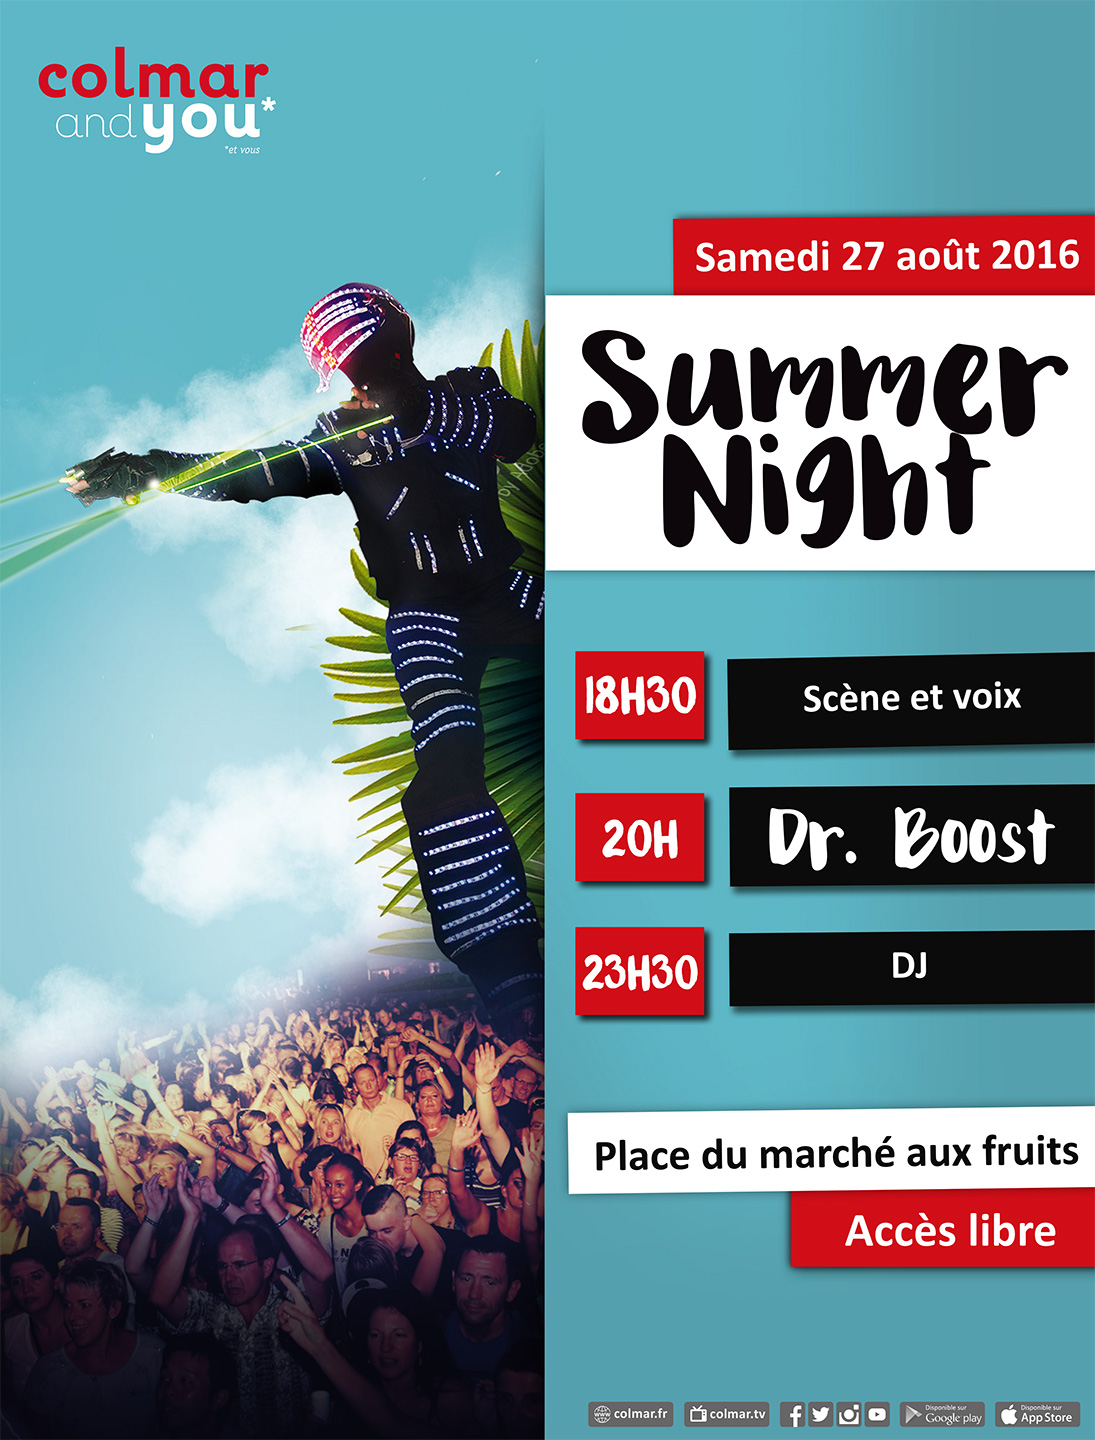 Visuel de la summer night 2016